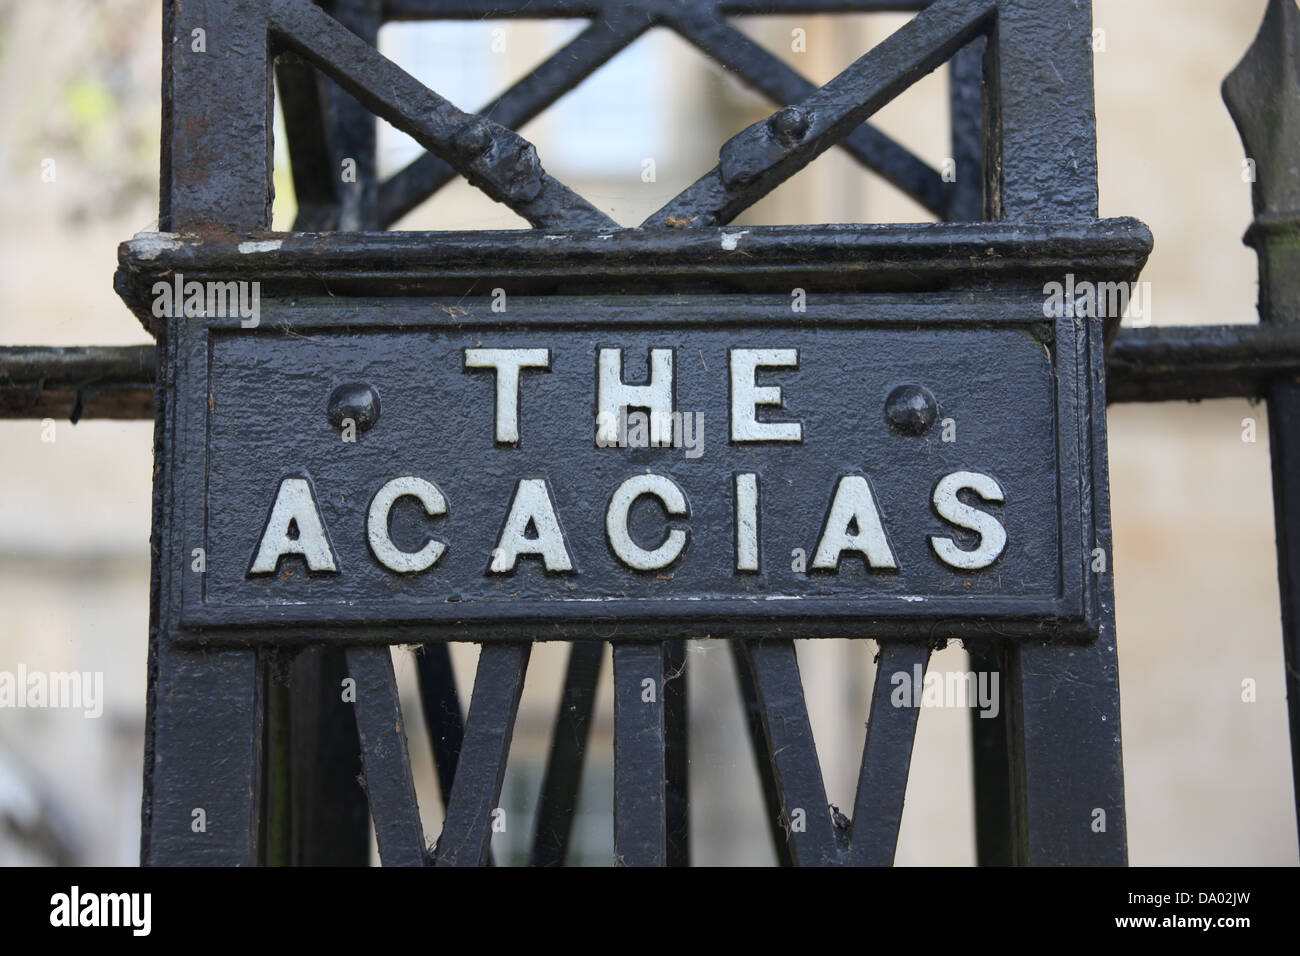 A cast Iron nameplate for a prestigious house in an urban location with black and white lettering. - Stock Image